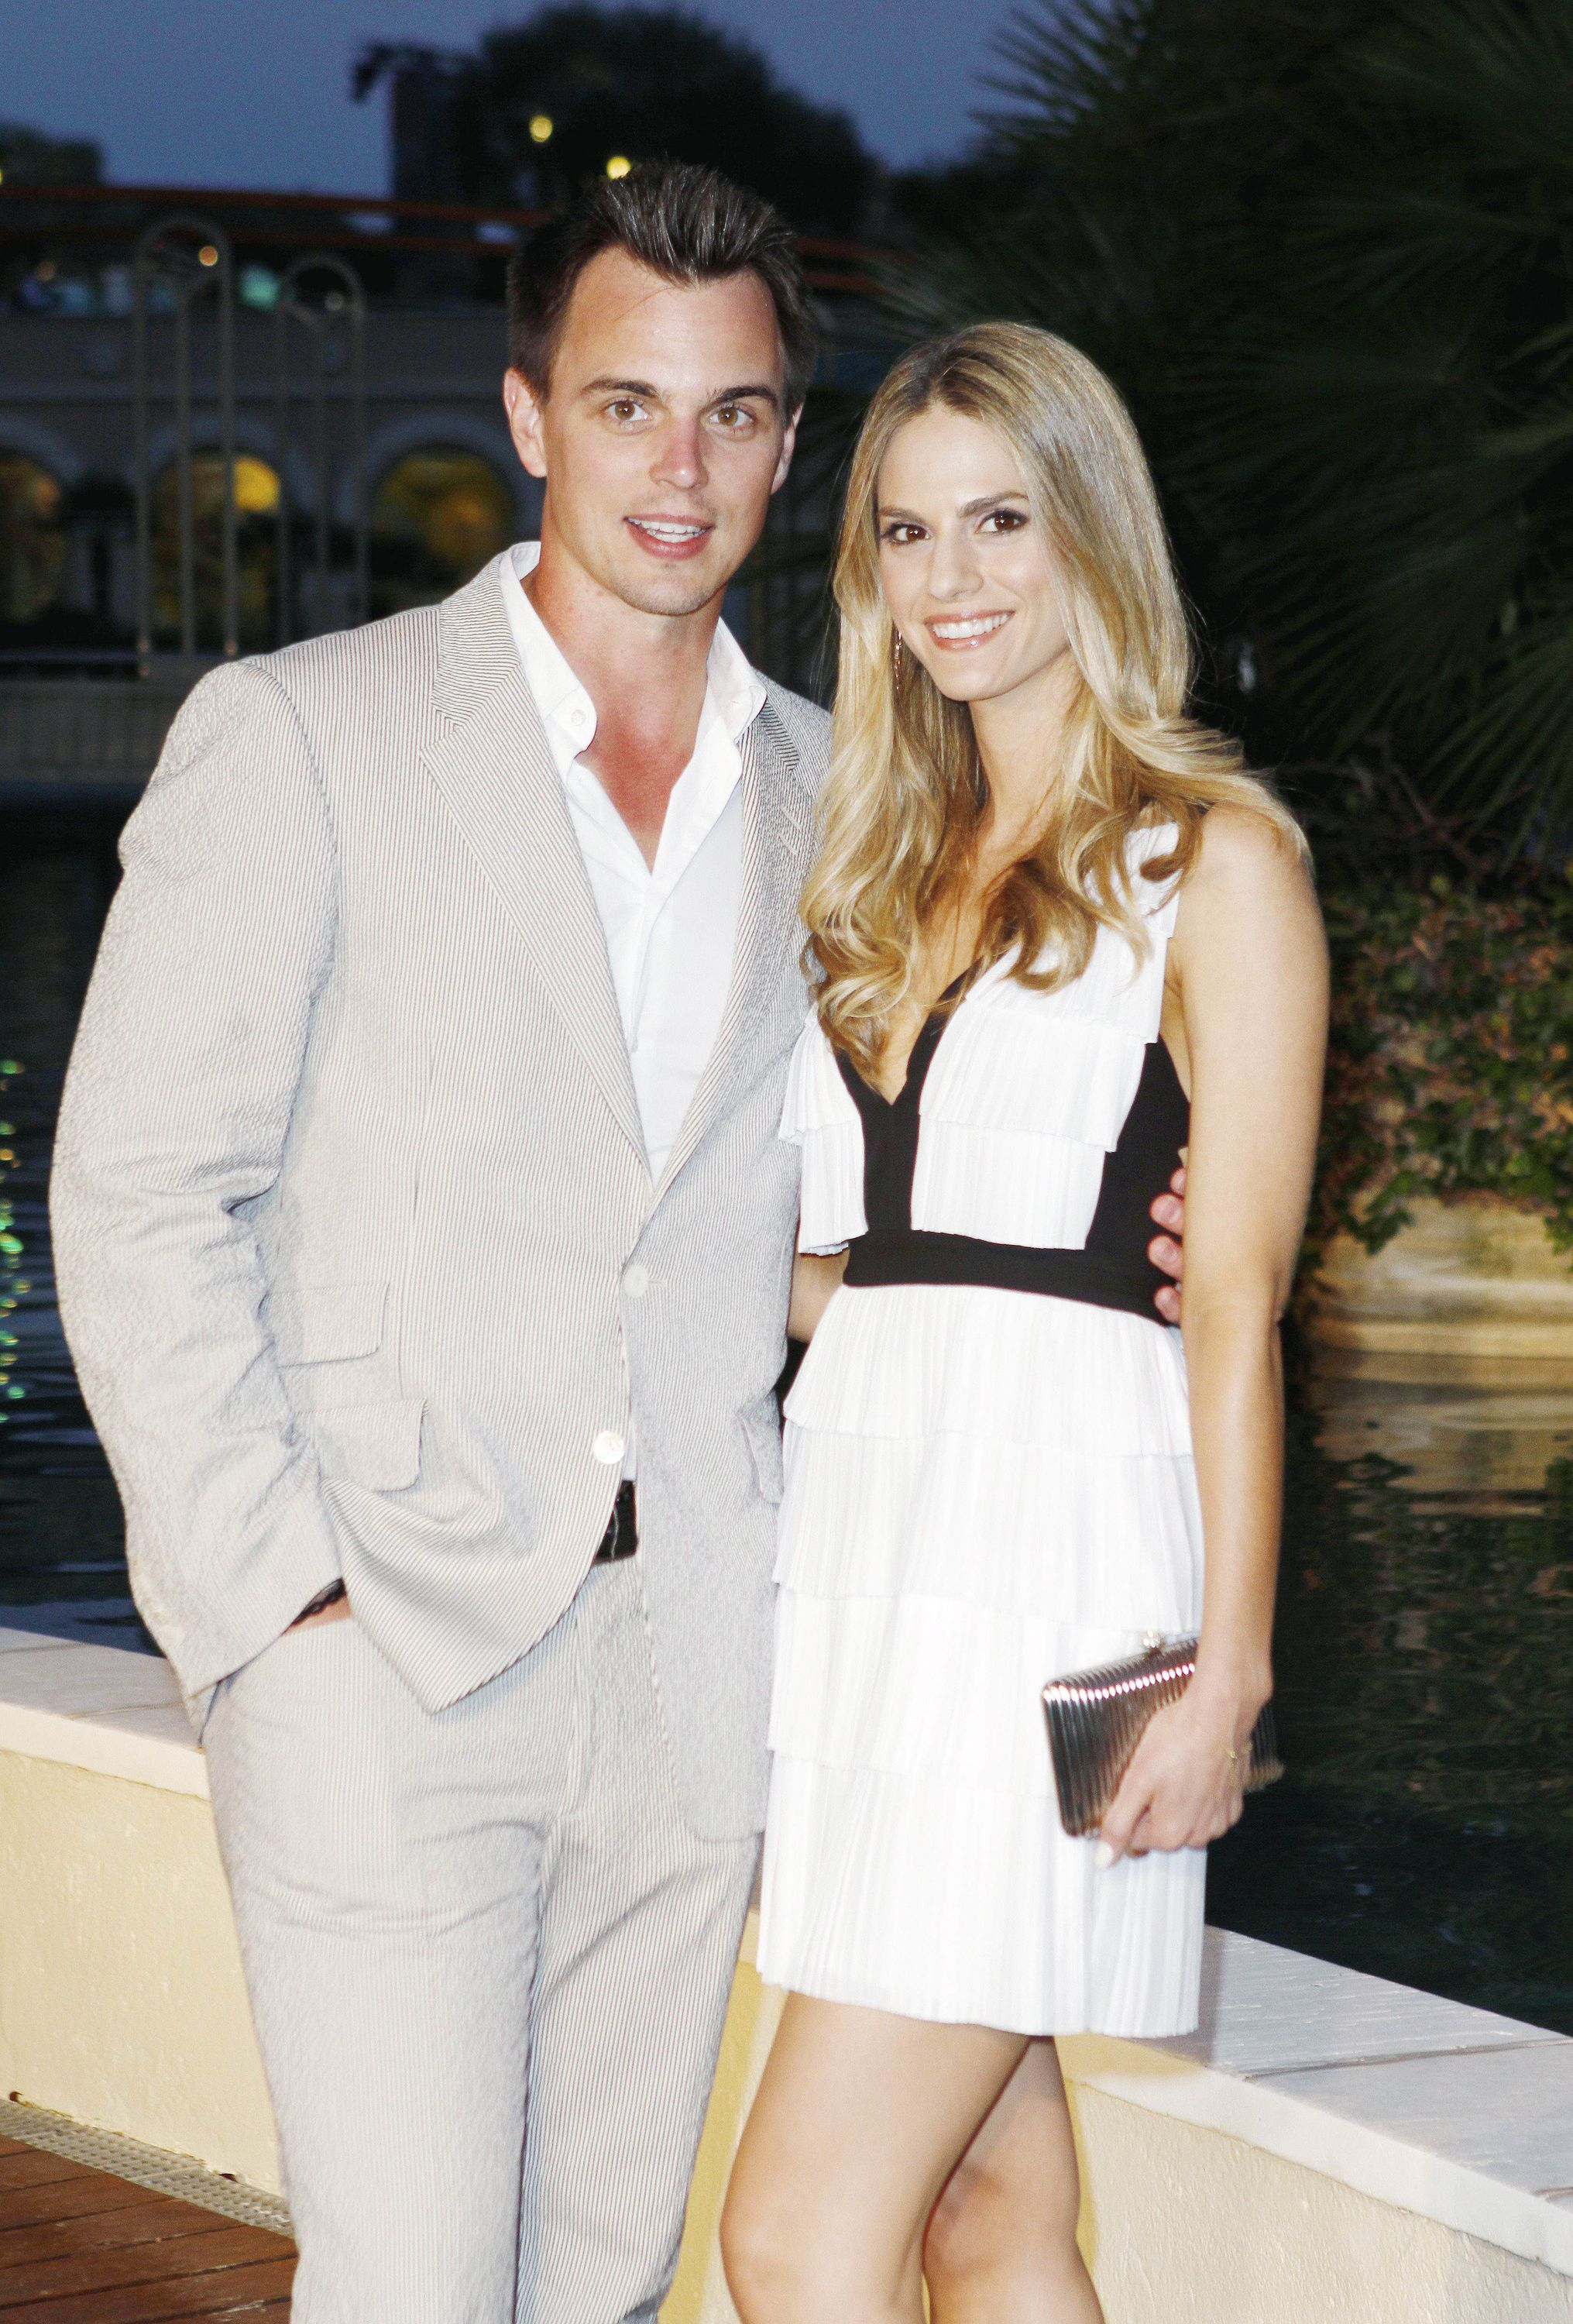 Kelly Kruger  (ex-Mac, Y&R), real-life fiancée of Darin Brooks  (Wyatt, B&B), who is set to appear on B&B as a publicist named Eva on August 8, has launched a beauty and lifestyle blog. The actress shares her favorite products, DIY projects, as well as photos of her and Brooks. Check it out at http://madisoncharles.com.